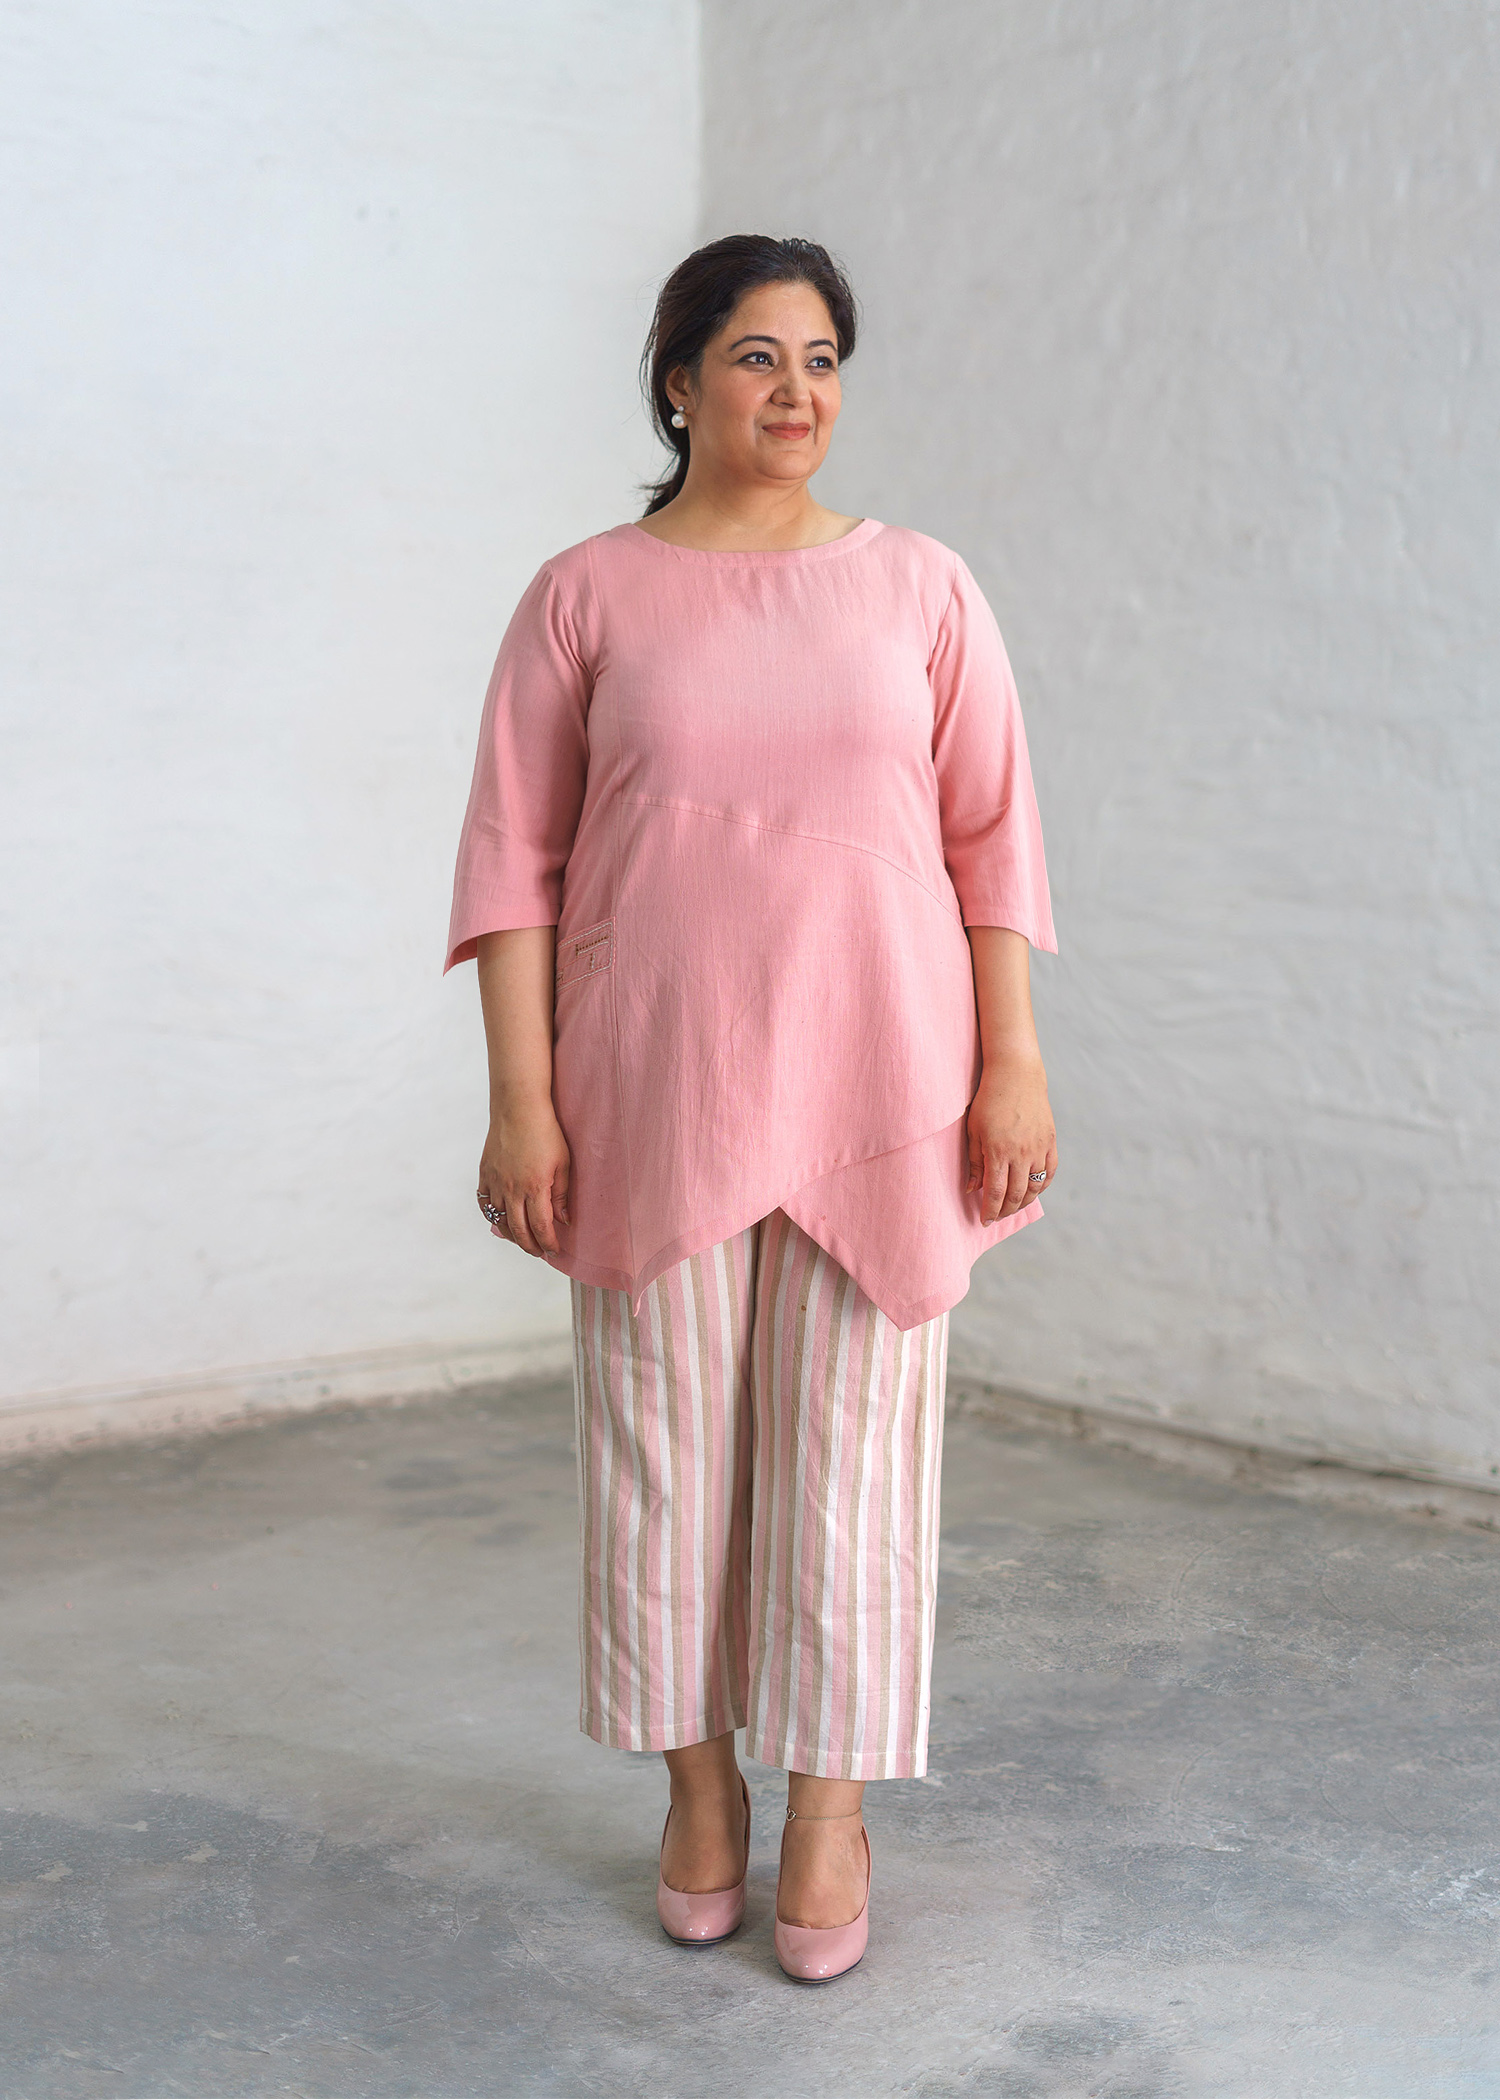 Baby Pink Handwoven Cotton Asymmetrical Top